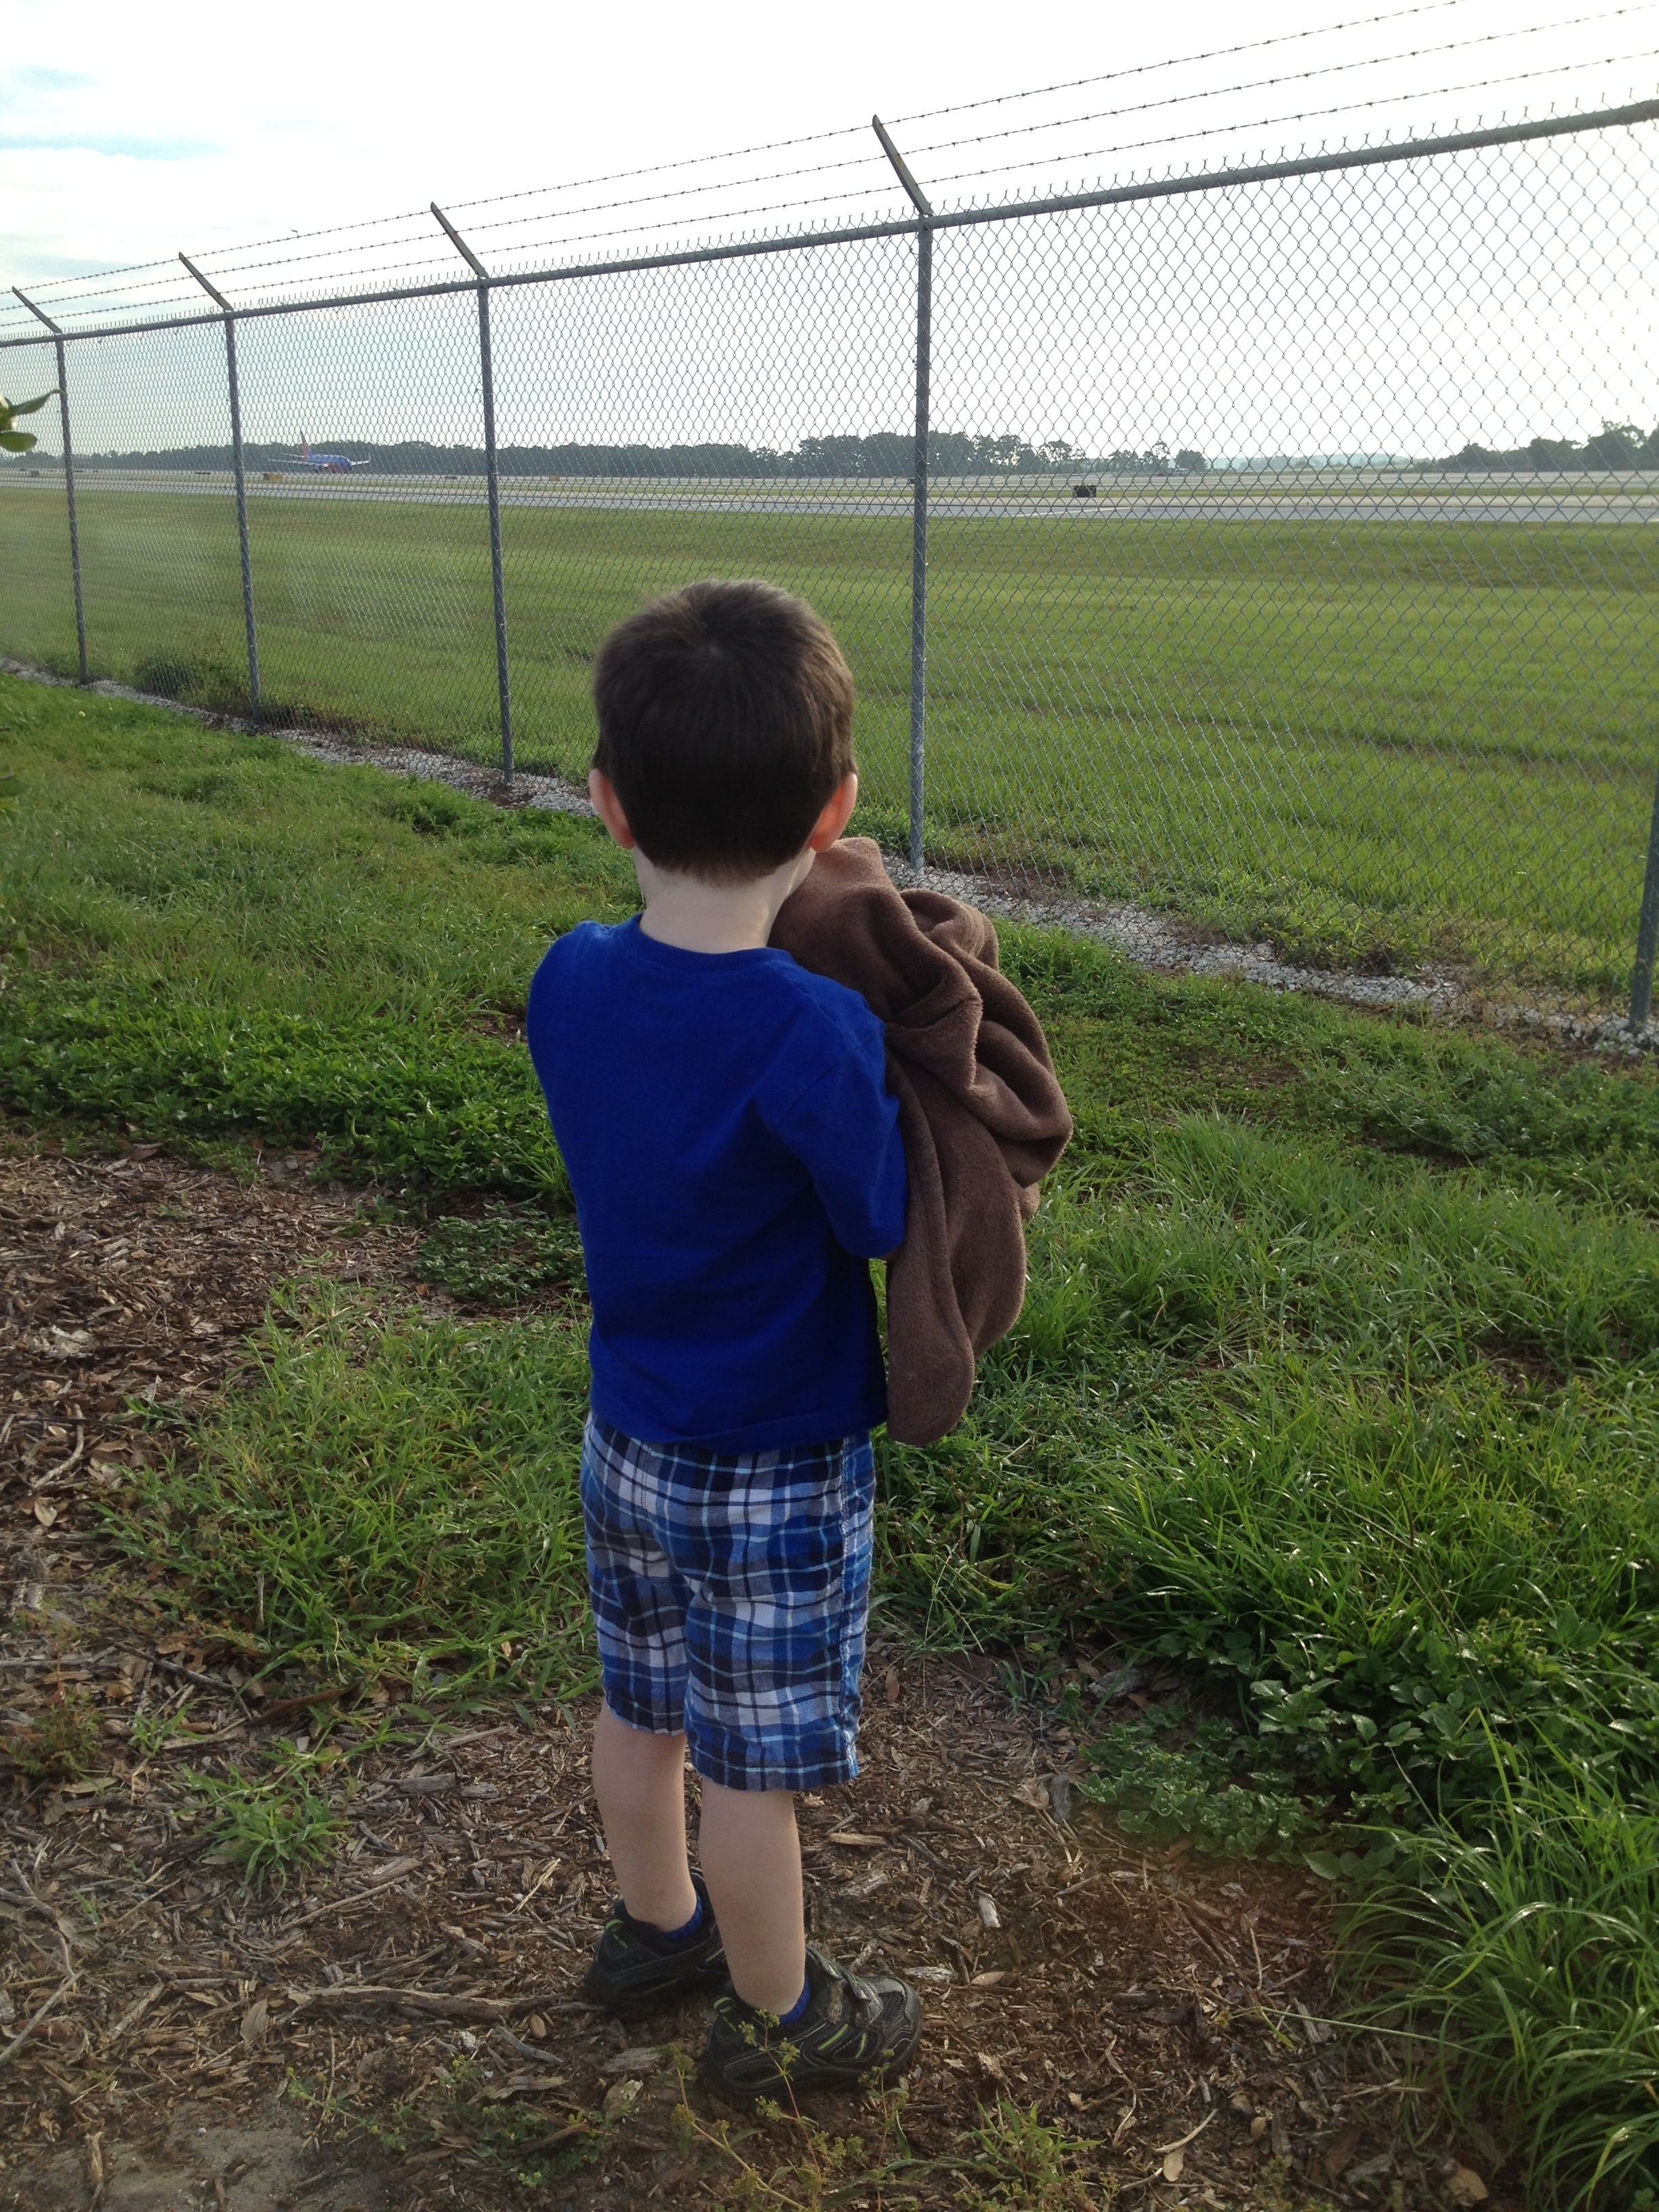 Not Mommy's airplane in the background; Jacob looking on